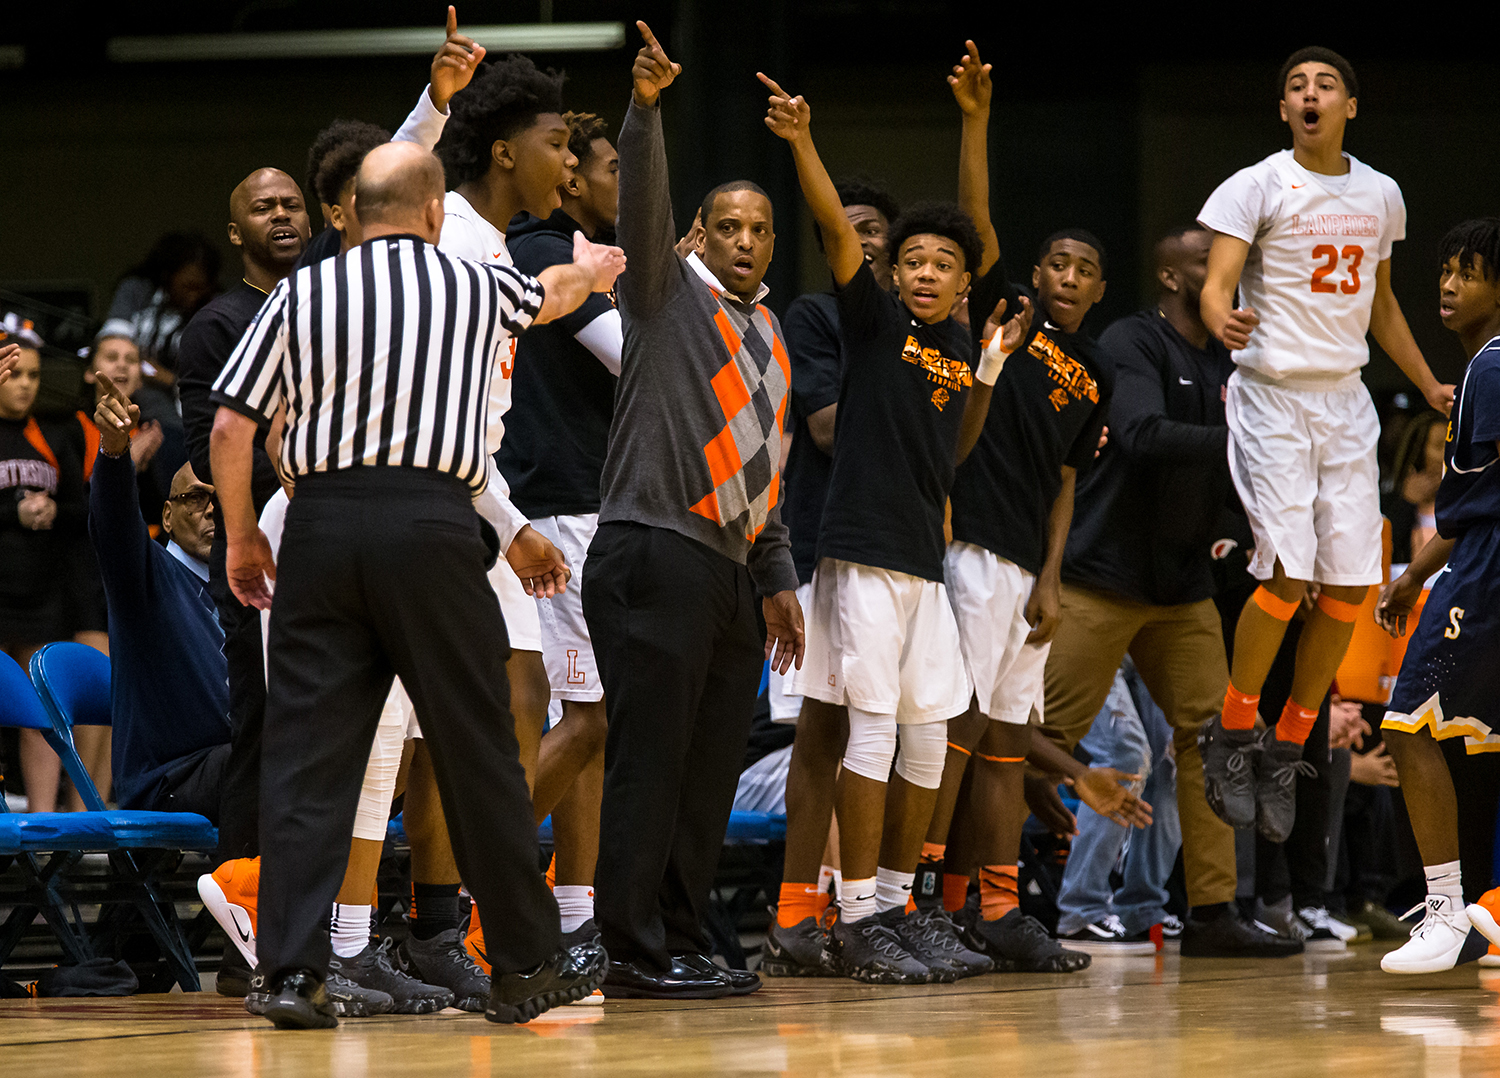 Lanphier boys basketball head coach Blake Turner and the Lions bench call out for a Lanphier ball that went out-of-bounds against Southeast in the first quarter on opening night of the Boys City Tournament at the Bank of Springfield Center, Wednesday, Jan. 16, 2019, in Springfield, Ill. [Justin L. Fowler/The State Journal-Register]